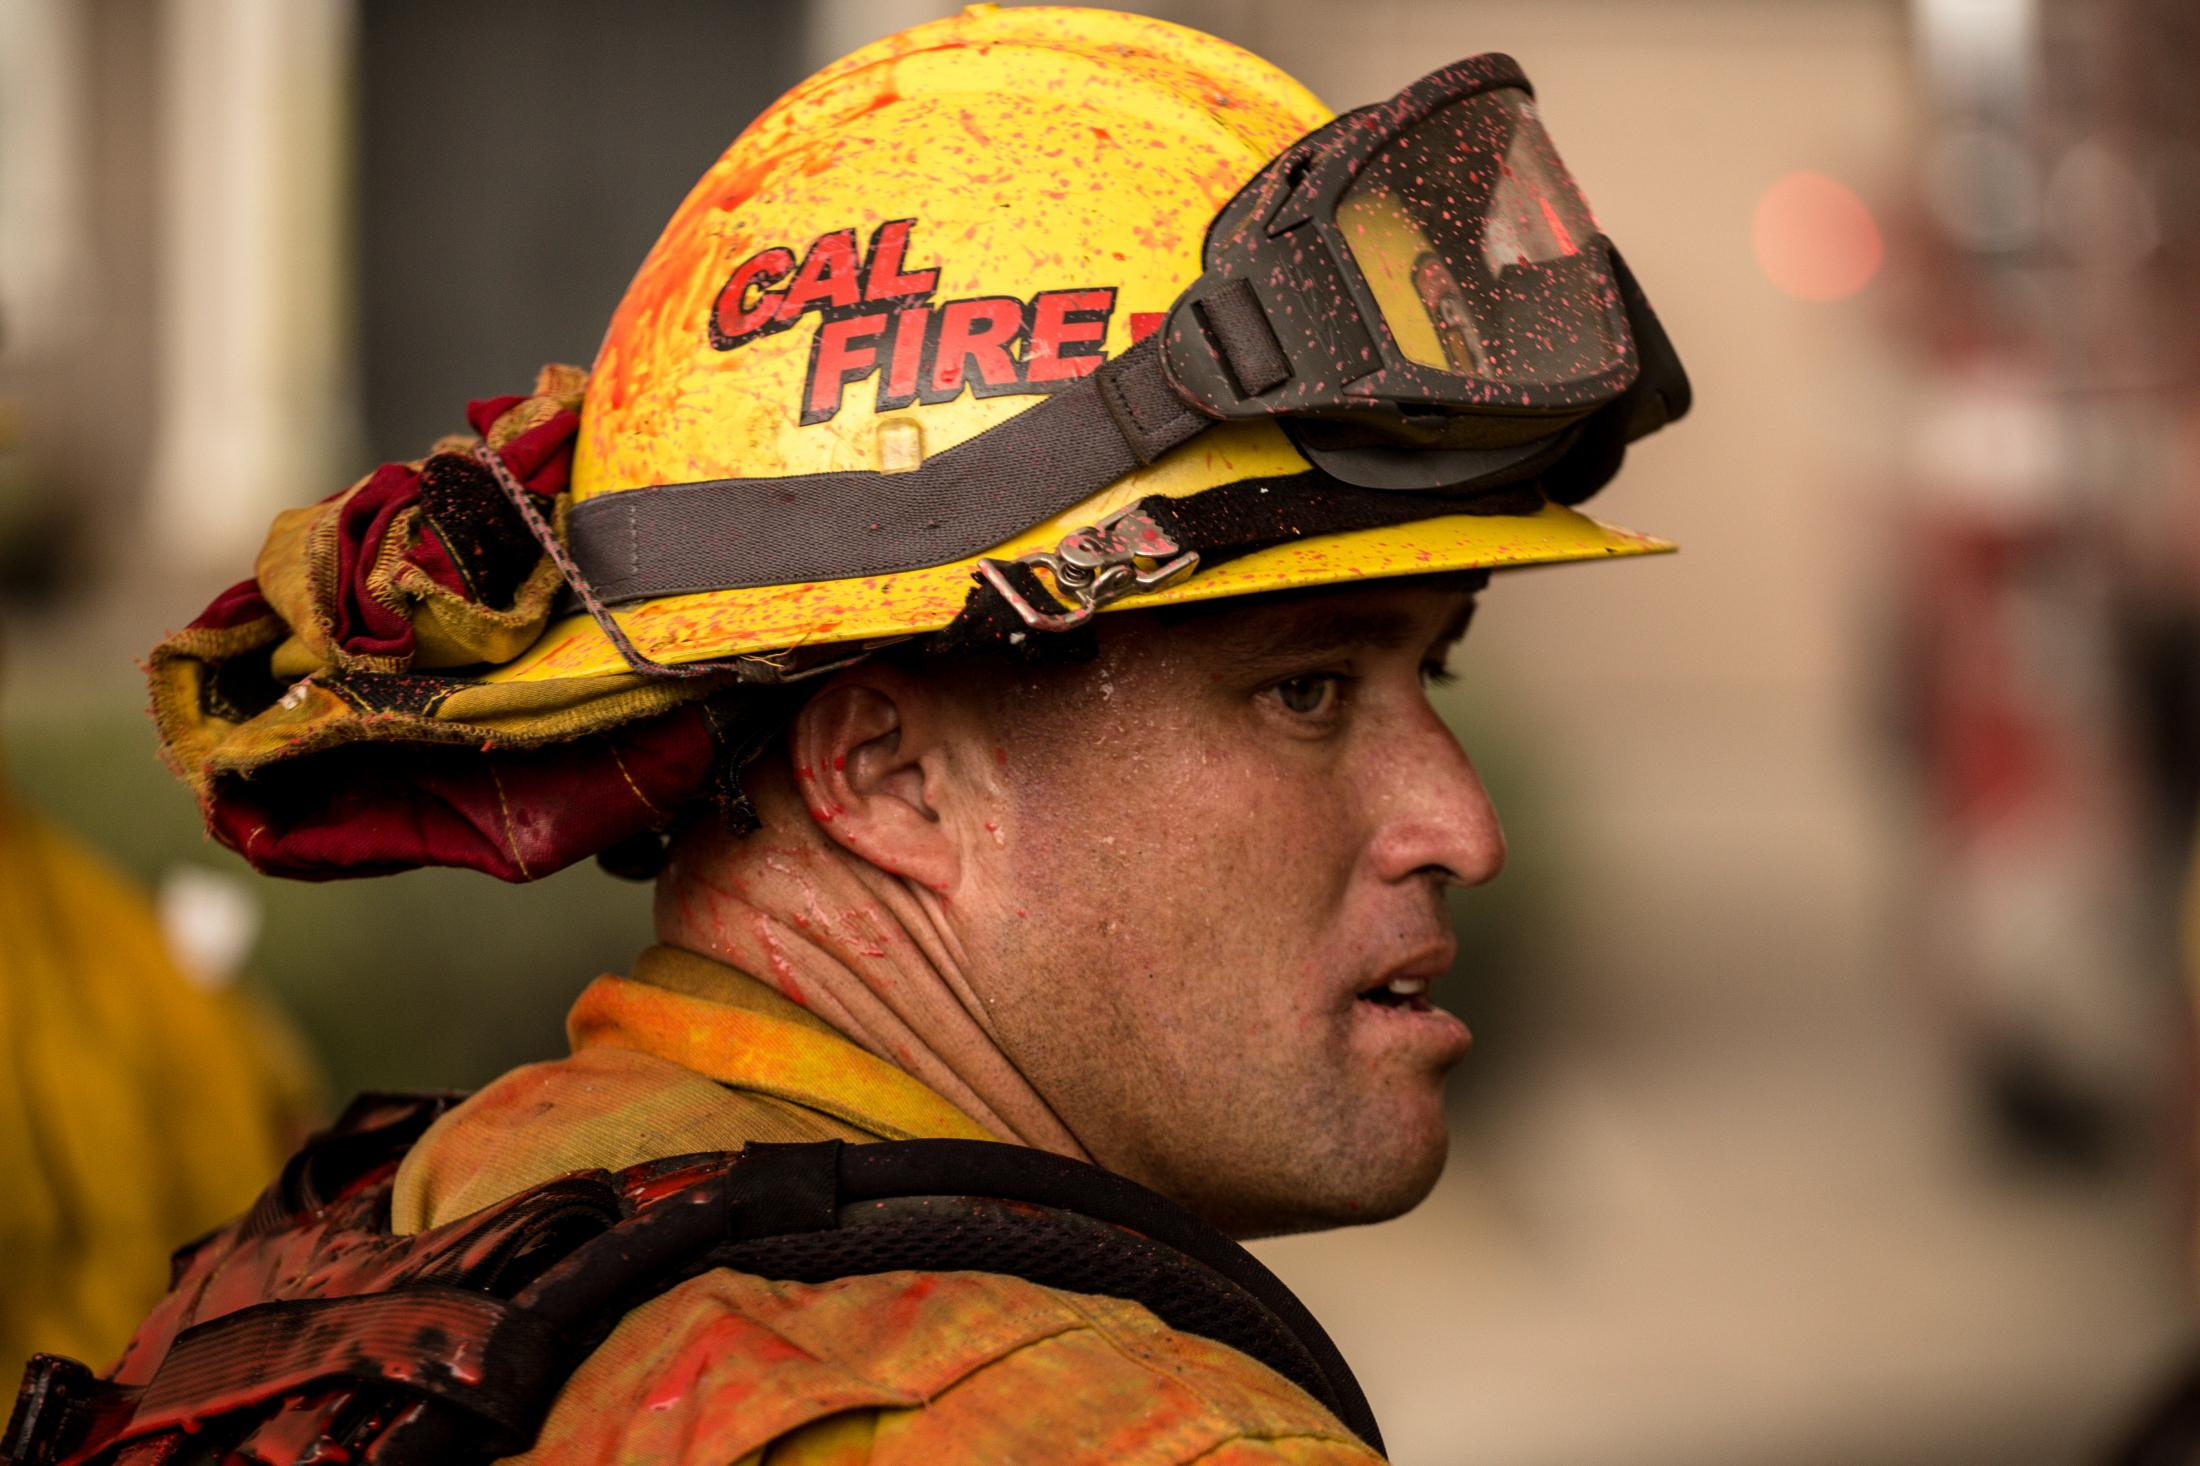 A portrait of a CALFIRE fighter as he comes off the fireline. Firefighters spend hours battling the violent wildfire.